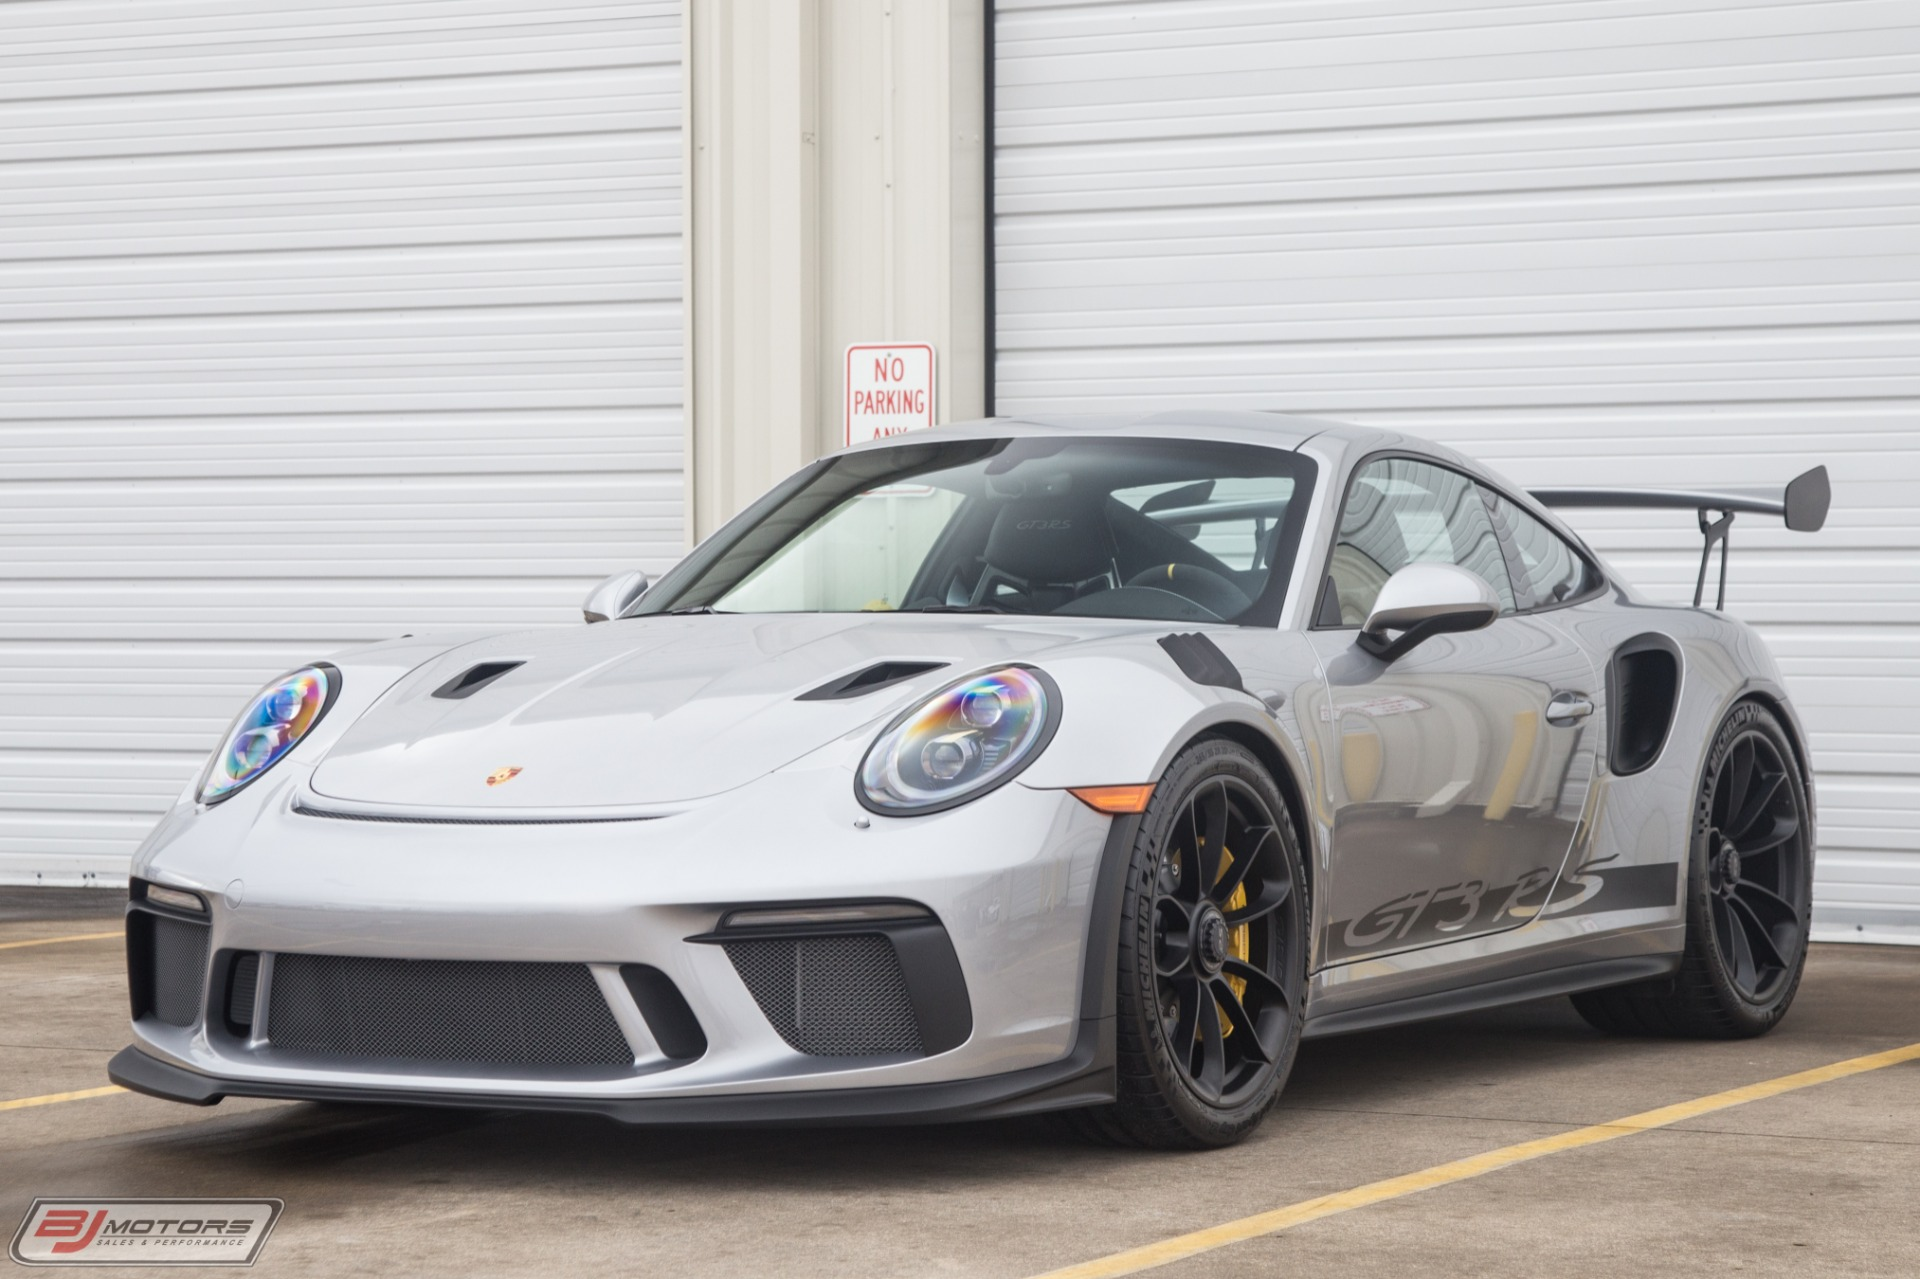 Used 2019 Porsche 911 Gt3 Rs For Sale 234 995 Bj